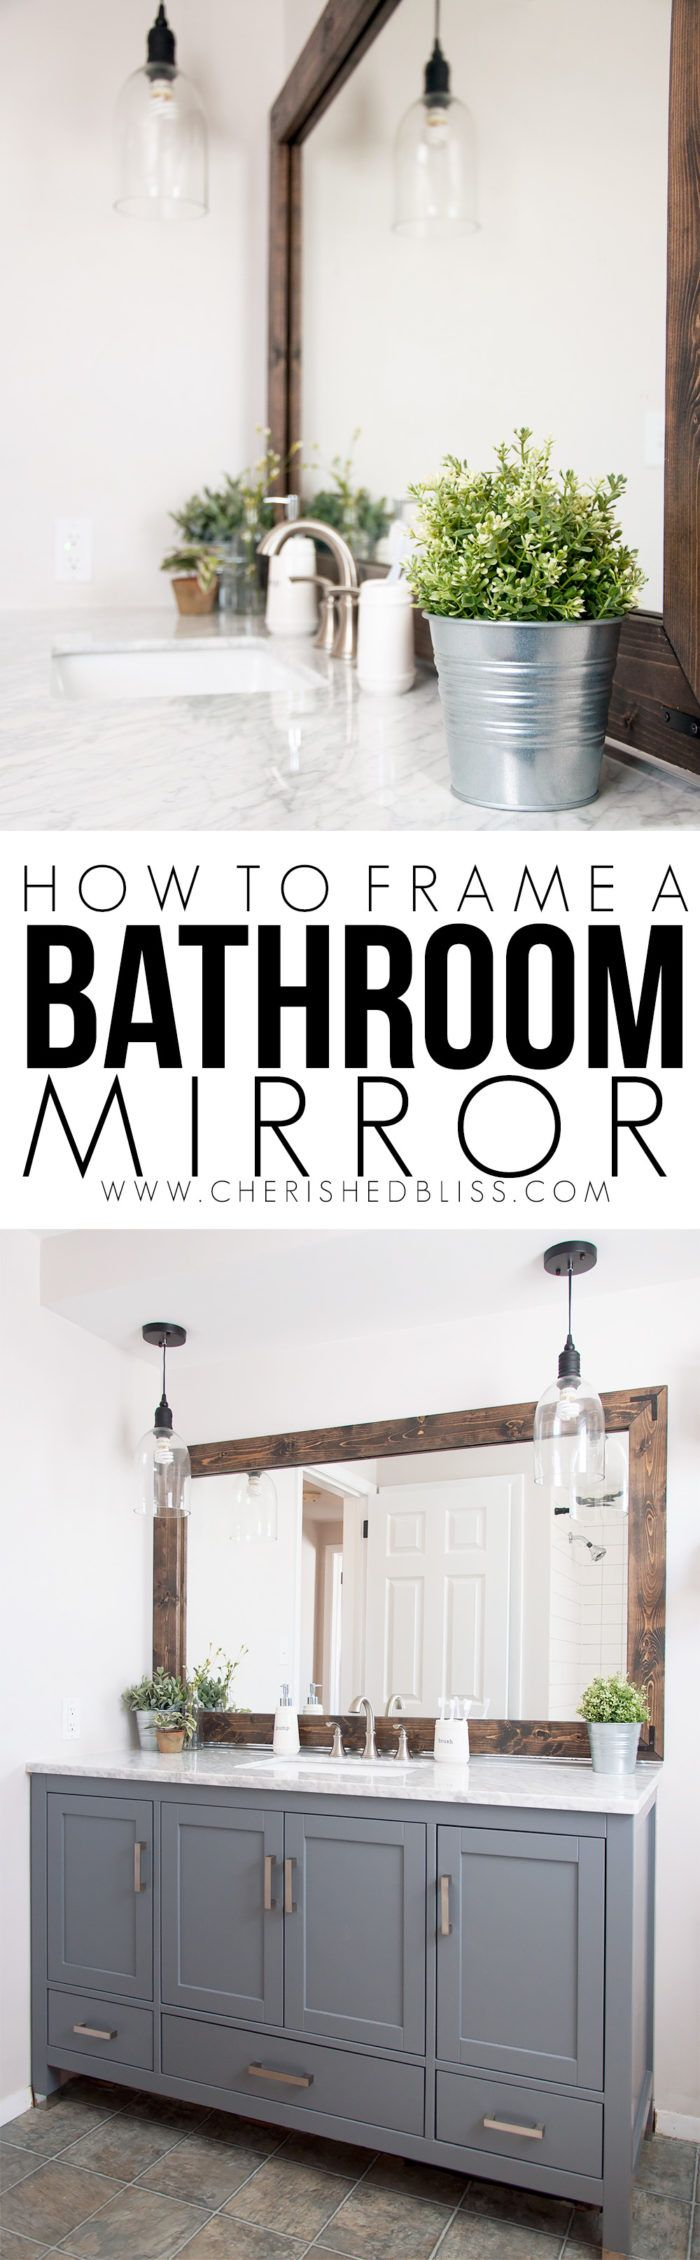 Bathroom mirror ideas diy - Brown Bathroom Mirrors